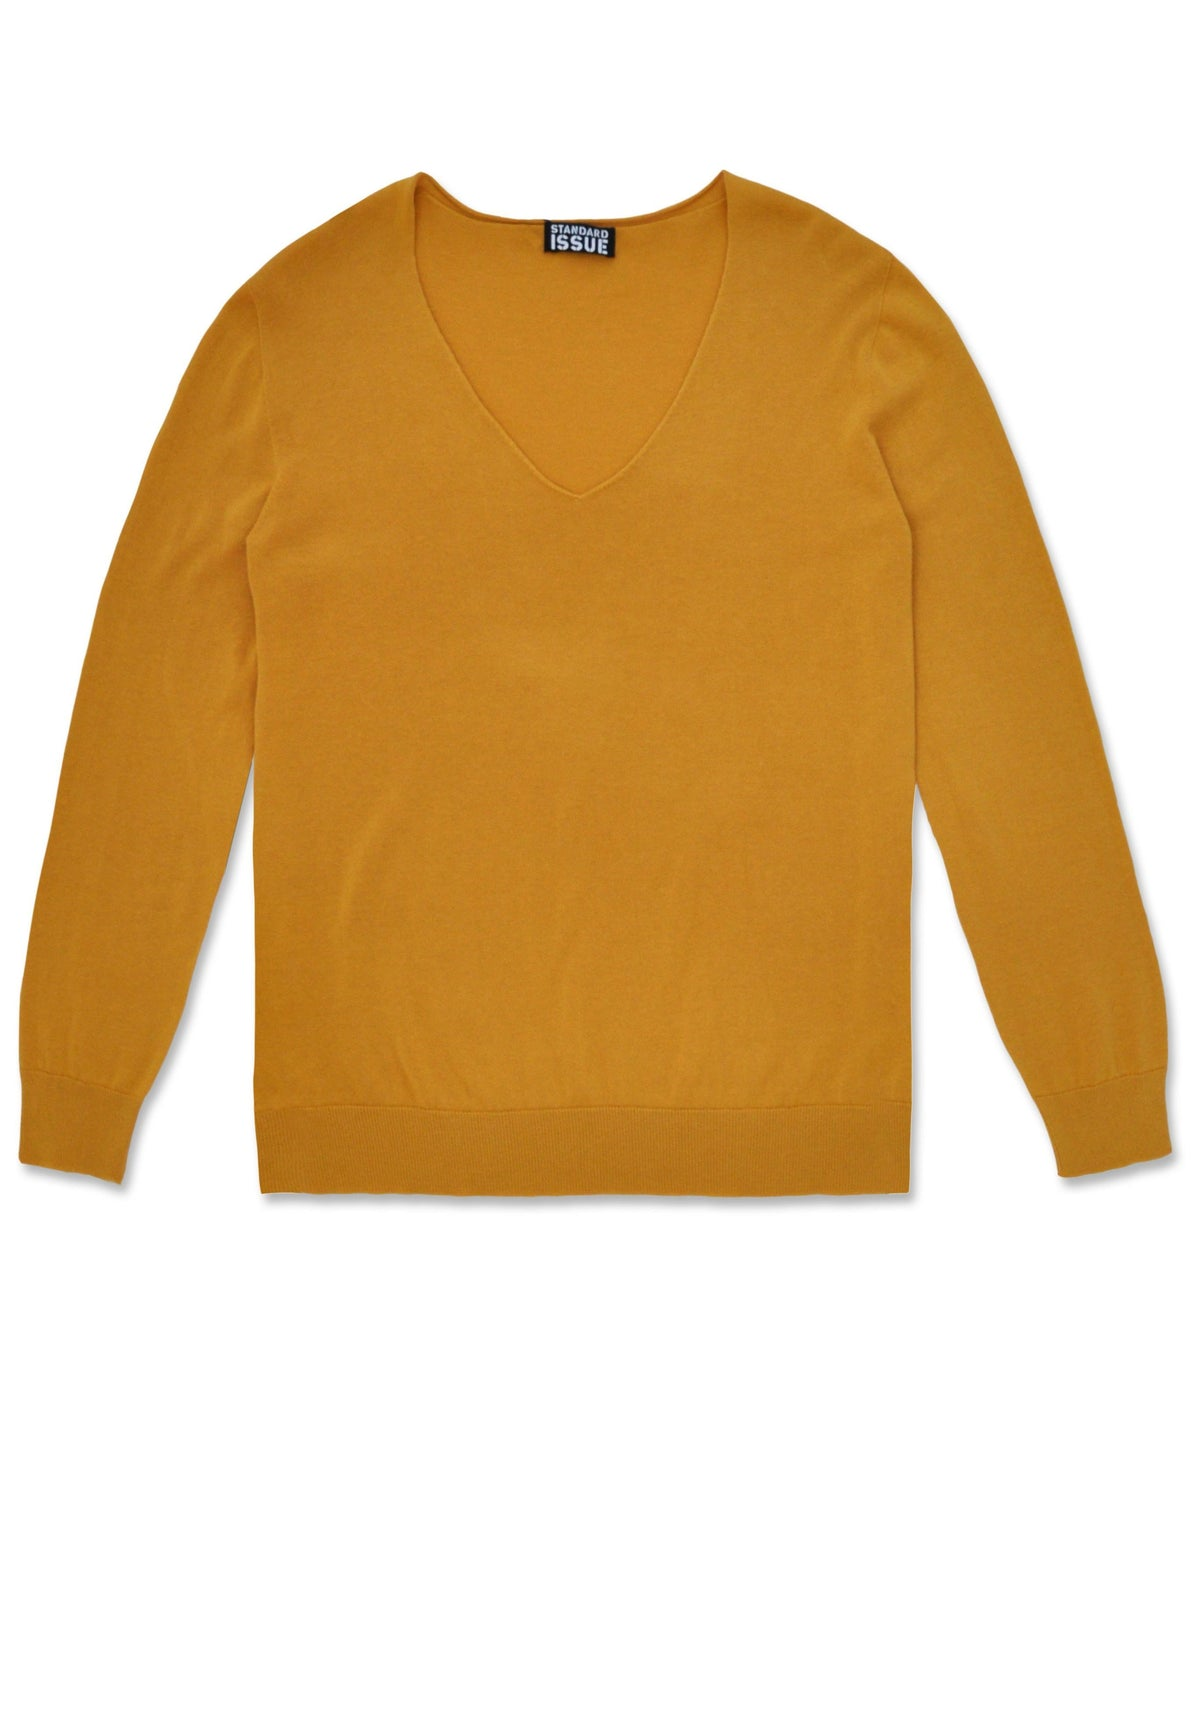 Standard Issue cotton v slouchy jumper in beeswax mustard yellow Knitwear Stockists Auckland Made in New Zealand NZ Designer Clothing